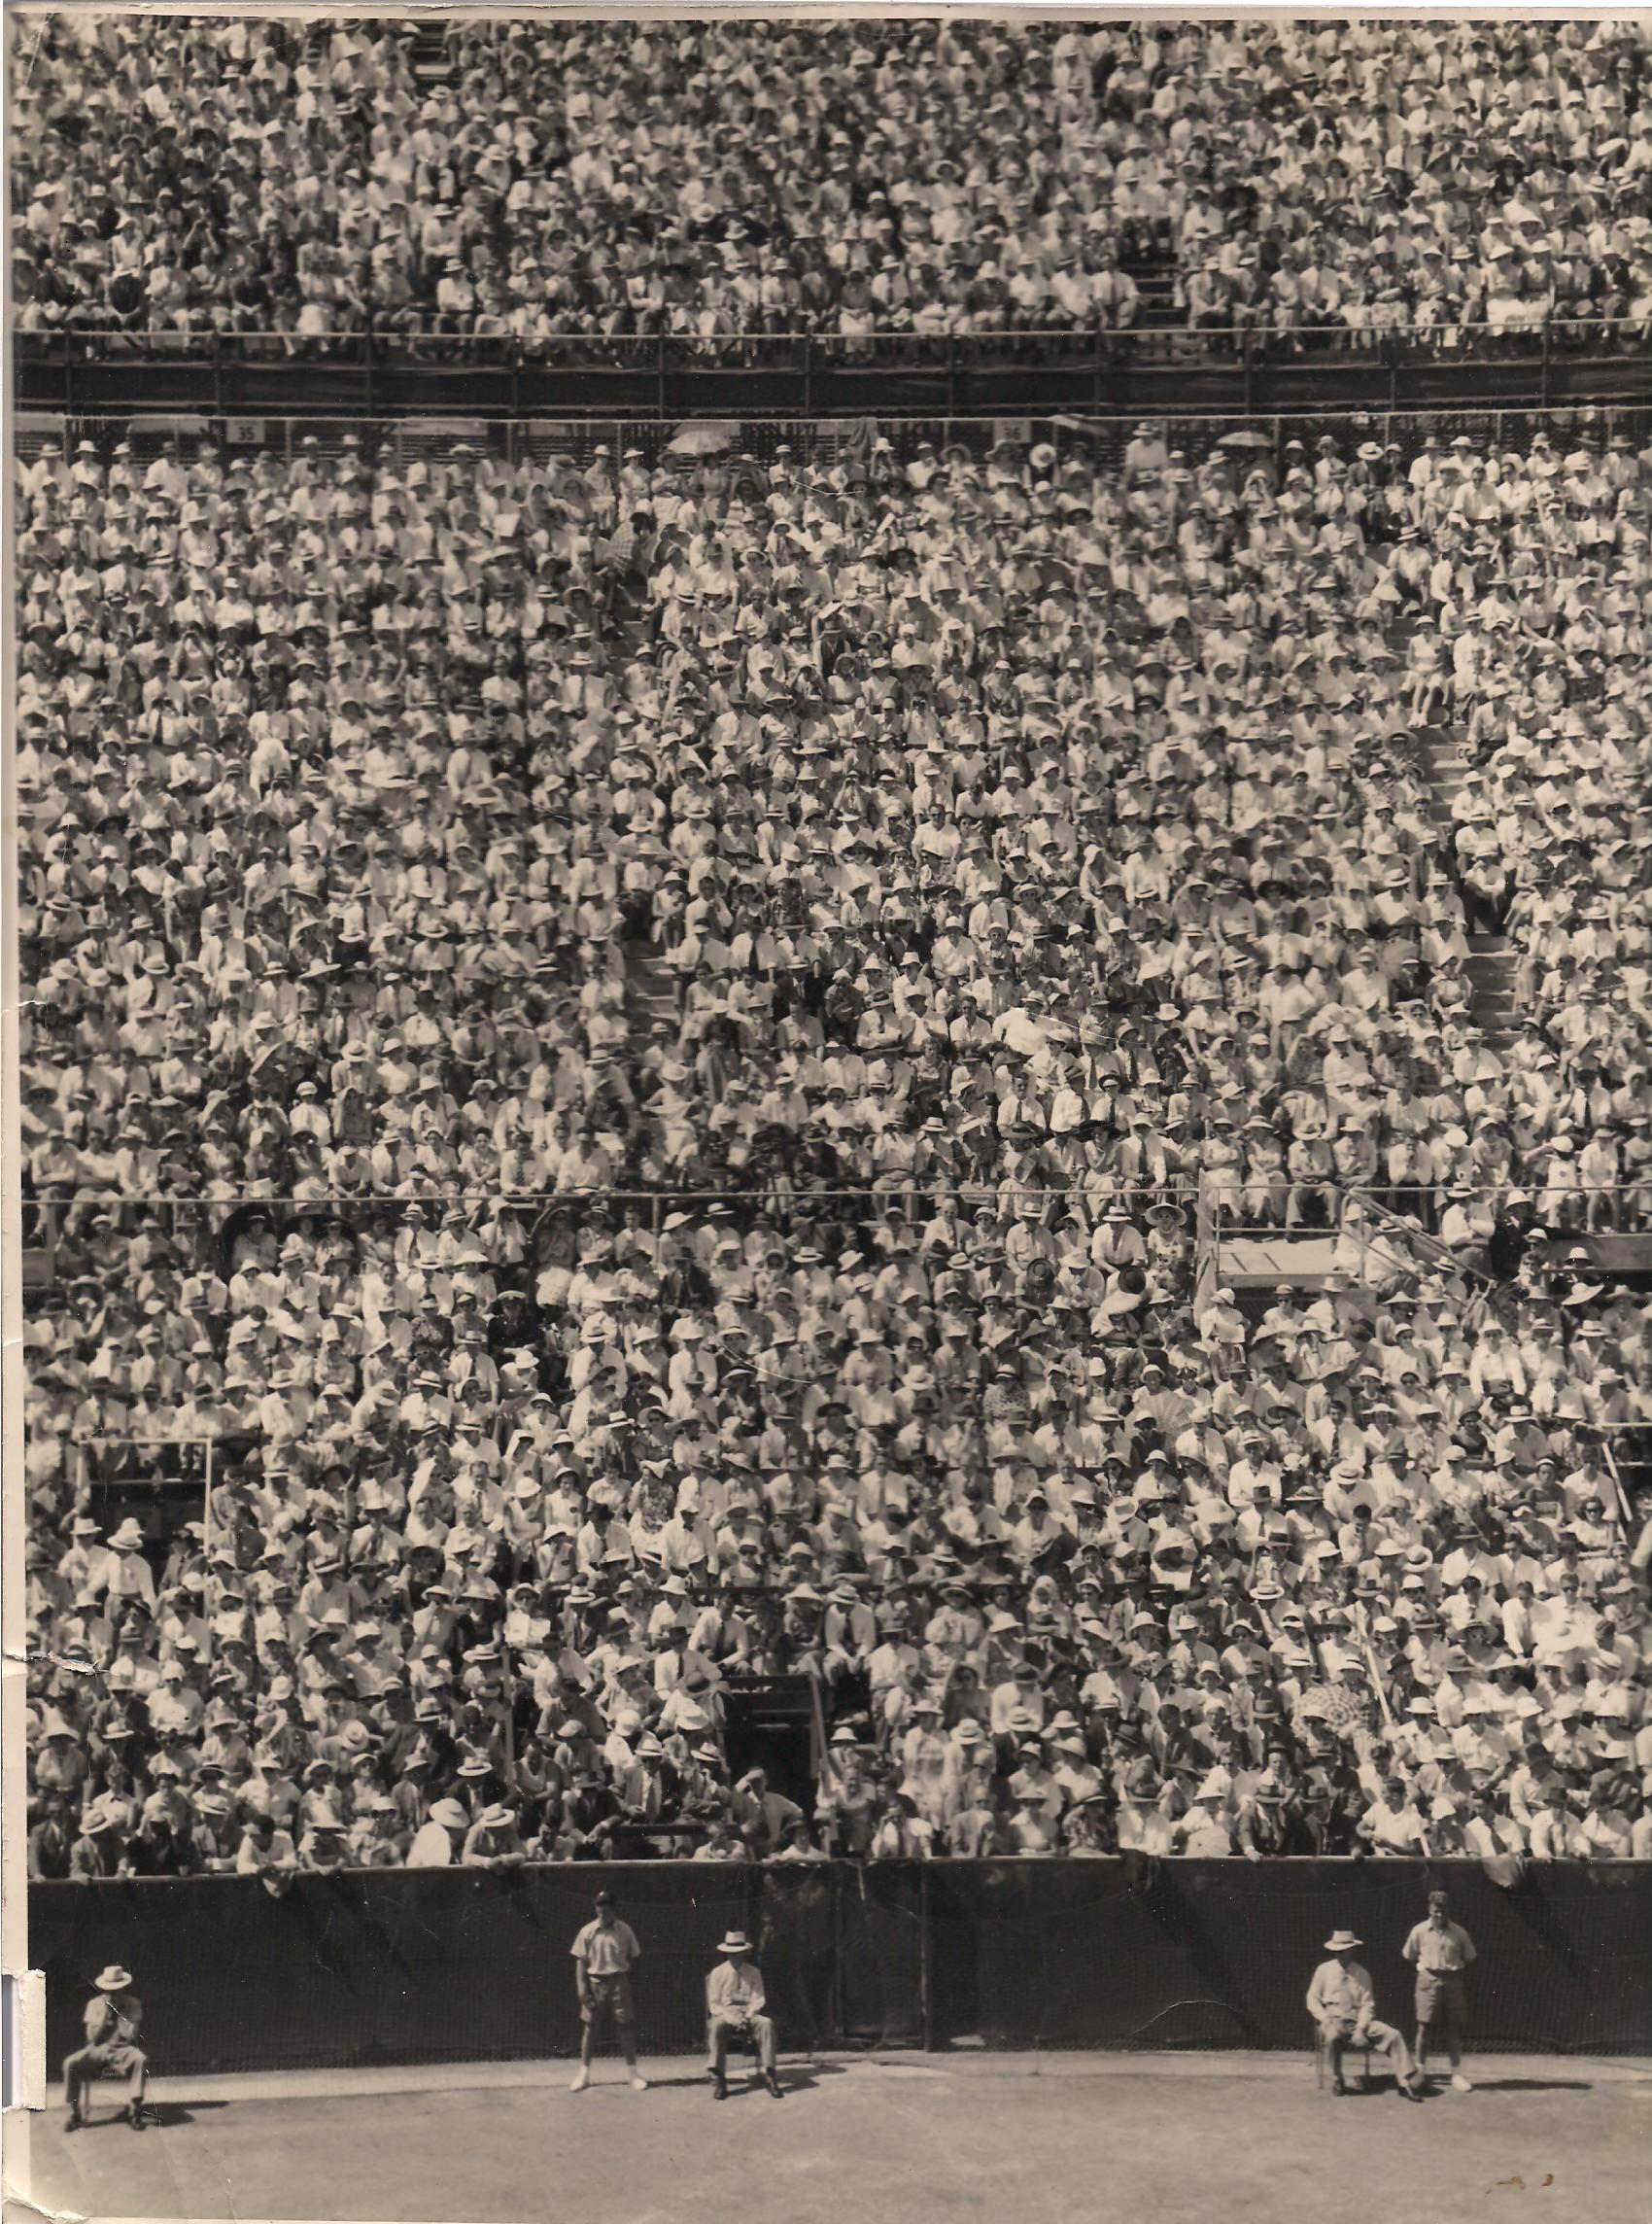 Davis Cup 1956 World Record Crowd - White City